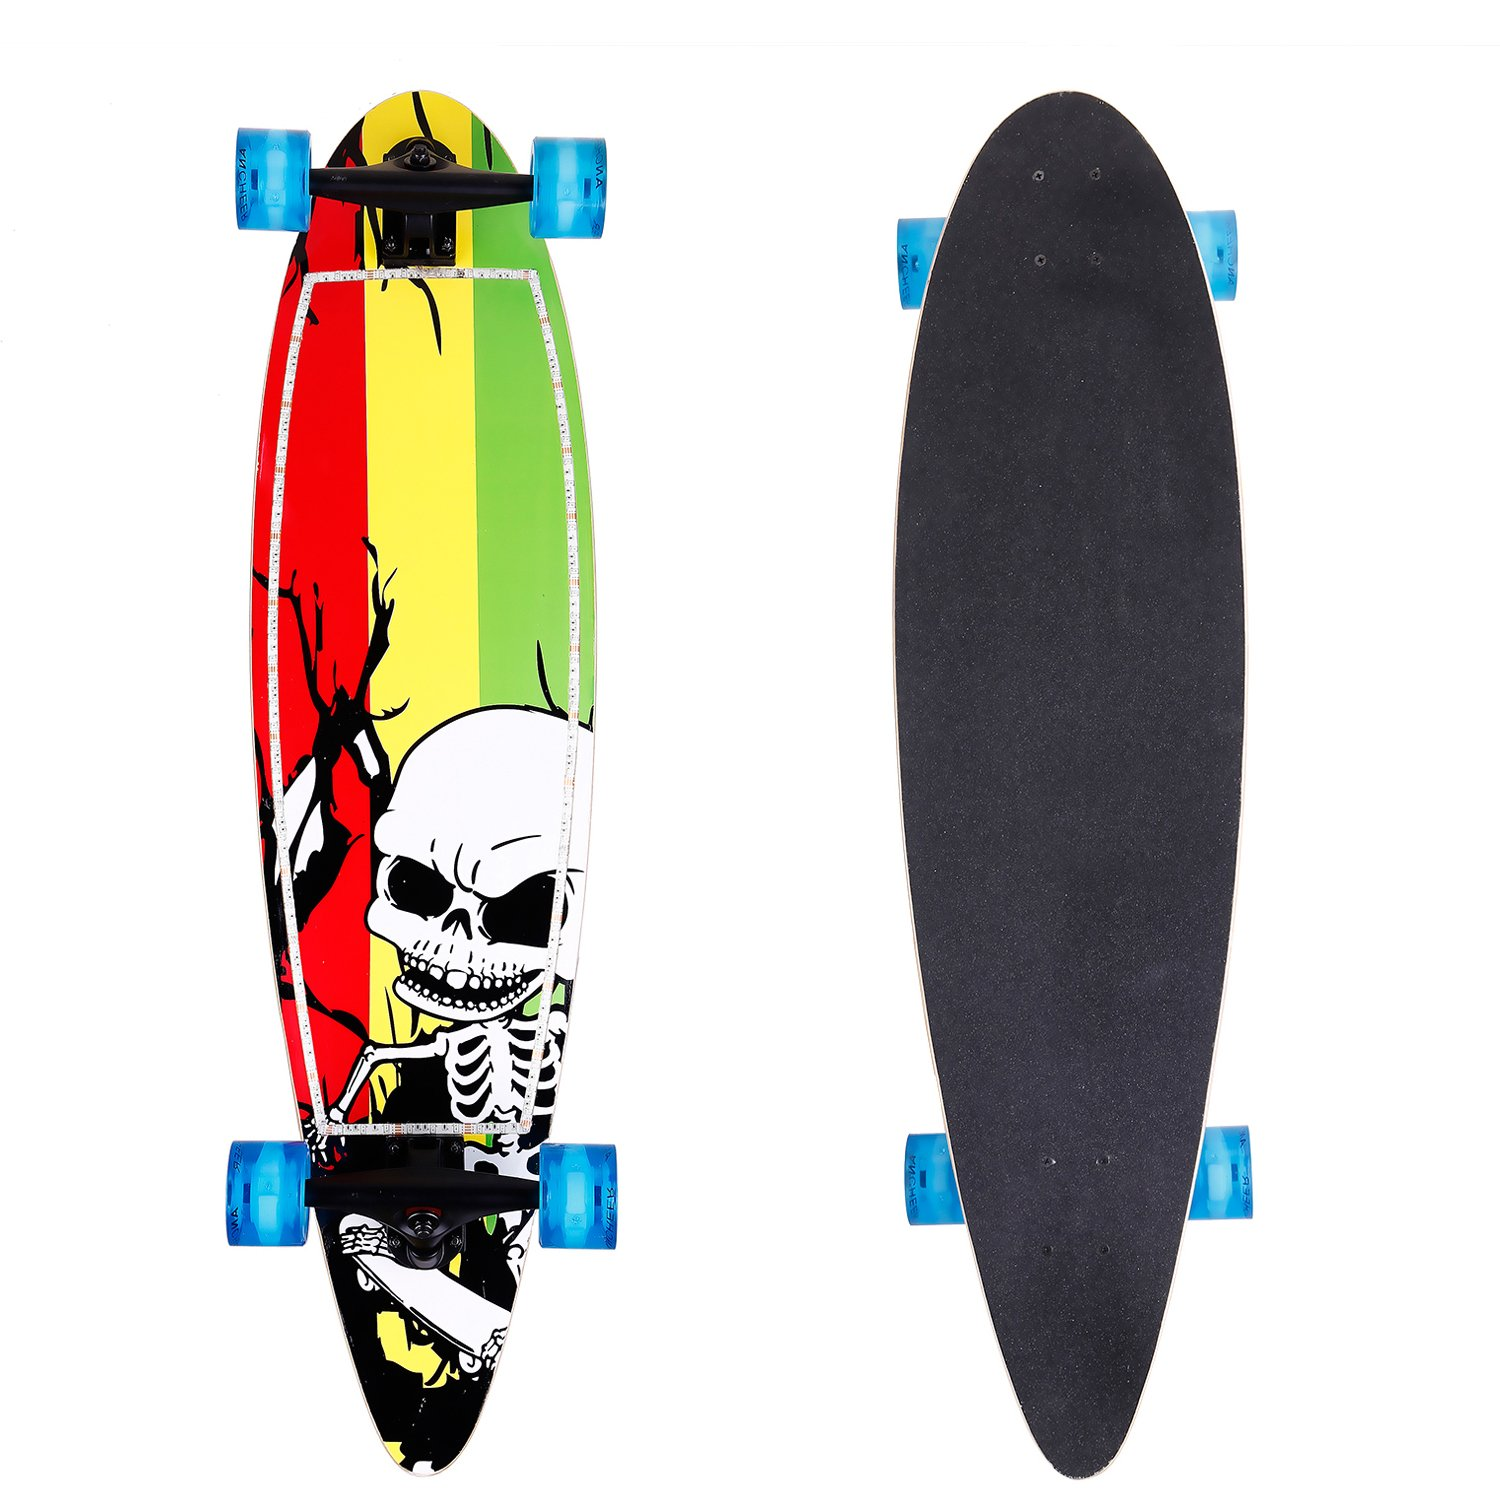 ANCHEER Pintail Cruiser Longboard Complete Long Skateboard 40x10 Inch for Boys Girls and Adult